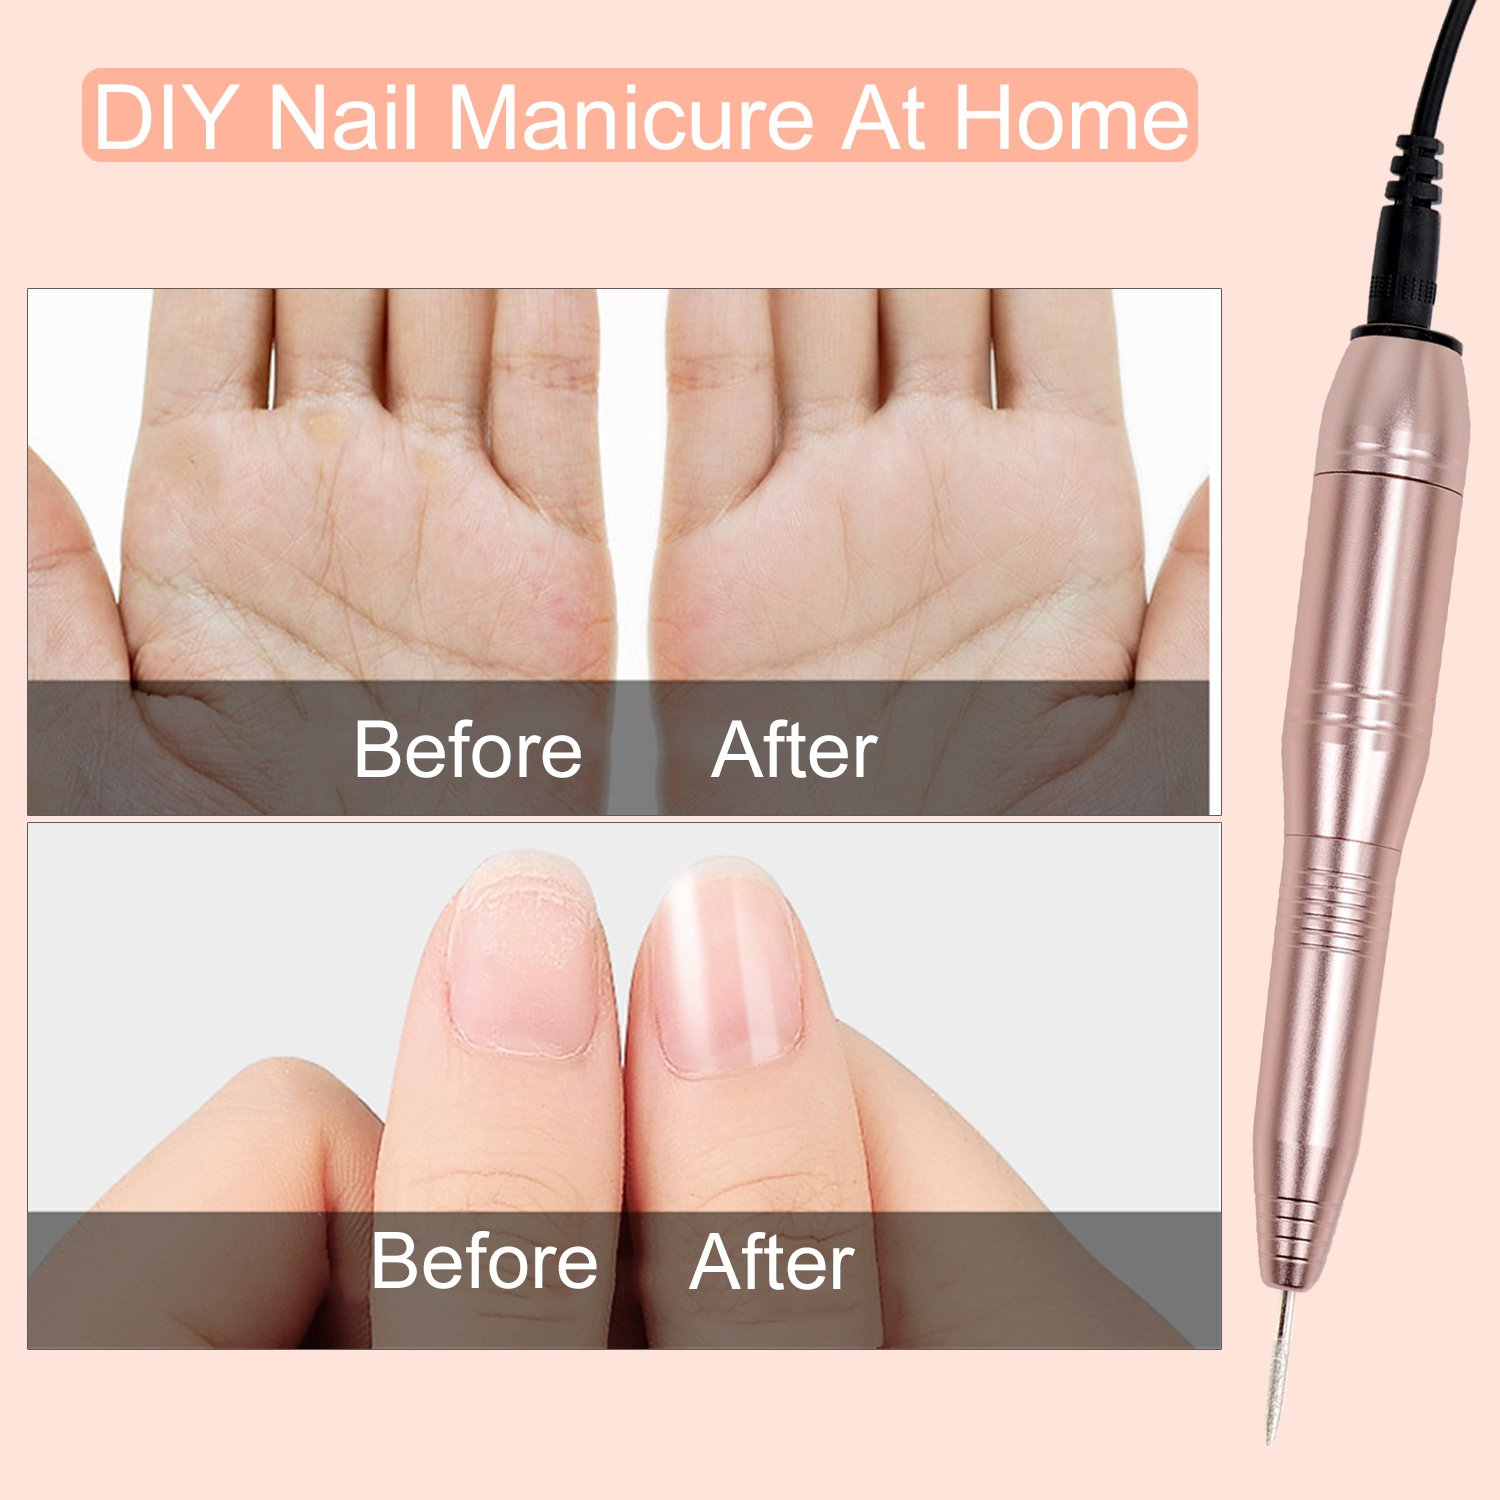 ECBASKET Electric Nail Drill Portable Nail Drill Machine Electric Acrylic Nail File Manicure Pedicure Kit Handpiece Grinder for Acrylic Gel Nails with 3 Nail Brushes for Nail & Grinder Bits Cleaning by ECBASKET (Image #4)